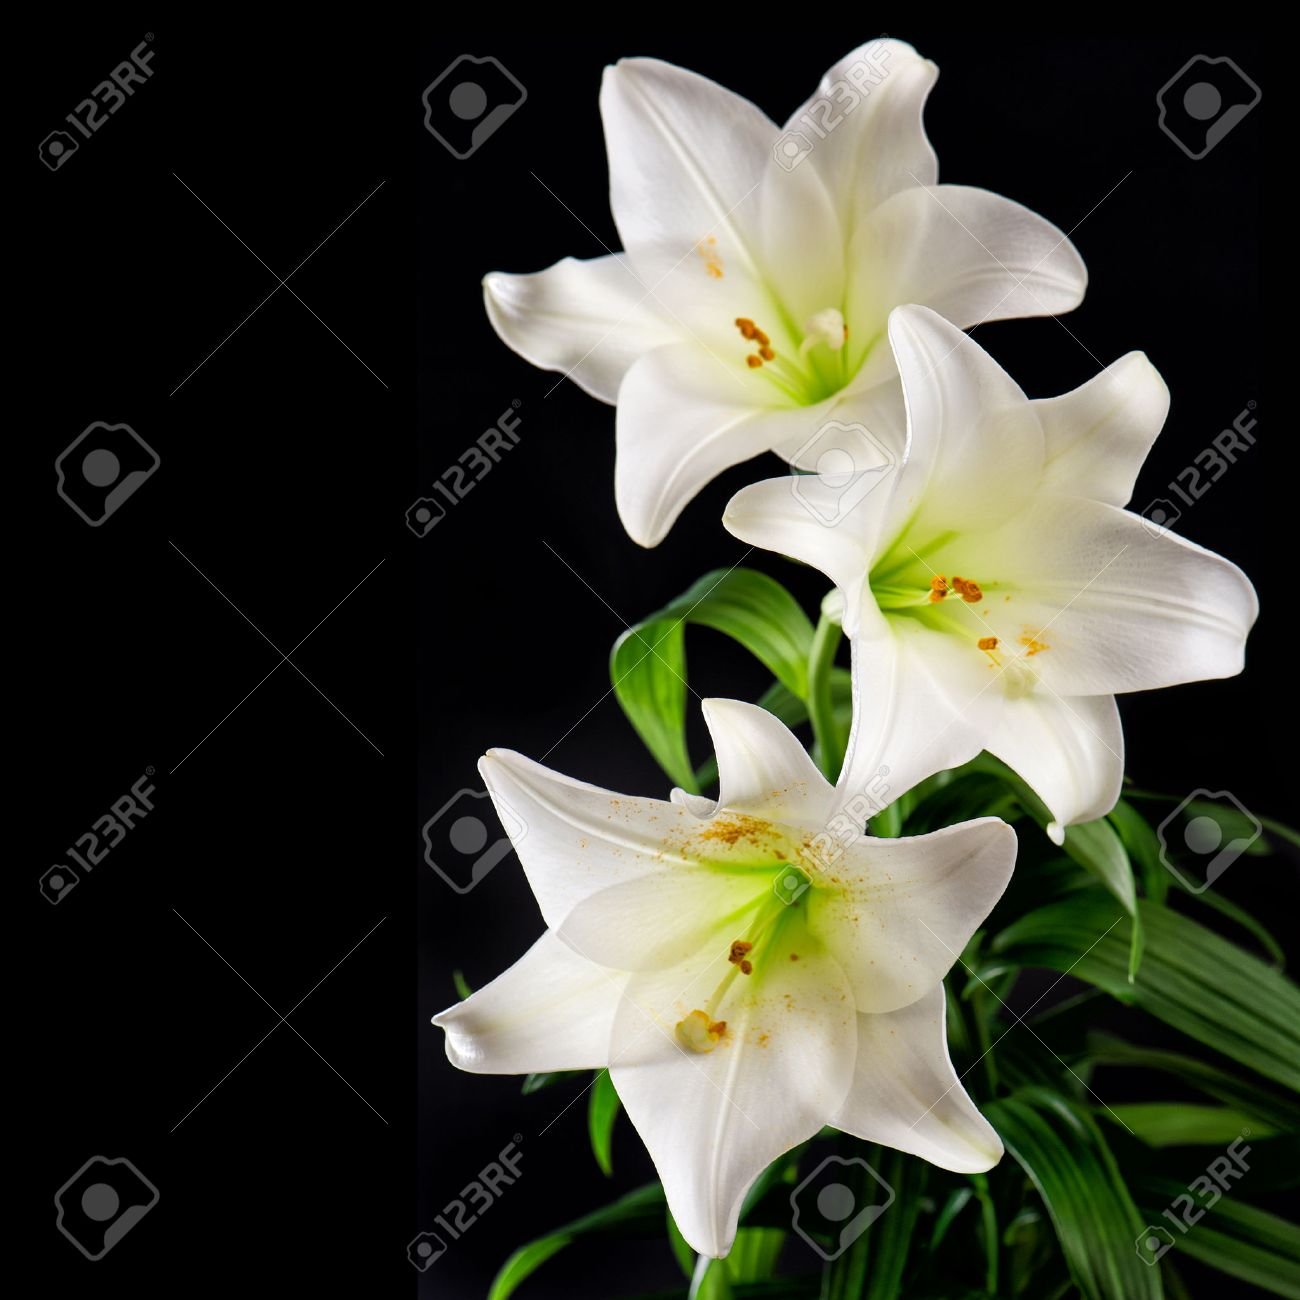 Condolence stock photos royalty free condolence images white lily flowers bouquet on black background condolence card concept altavistaventures Images